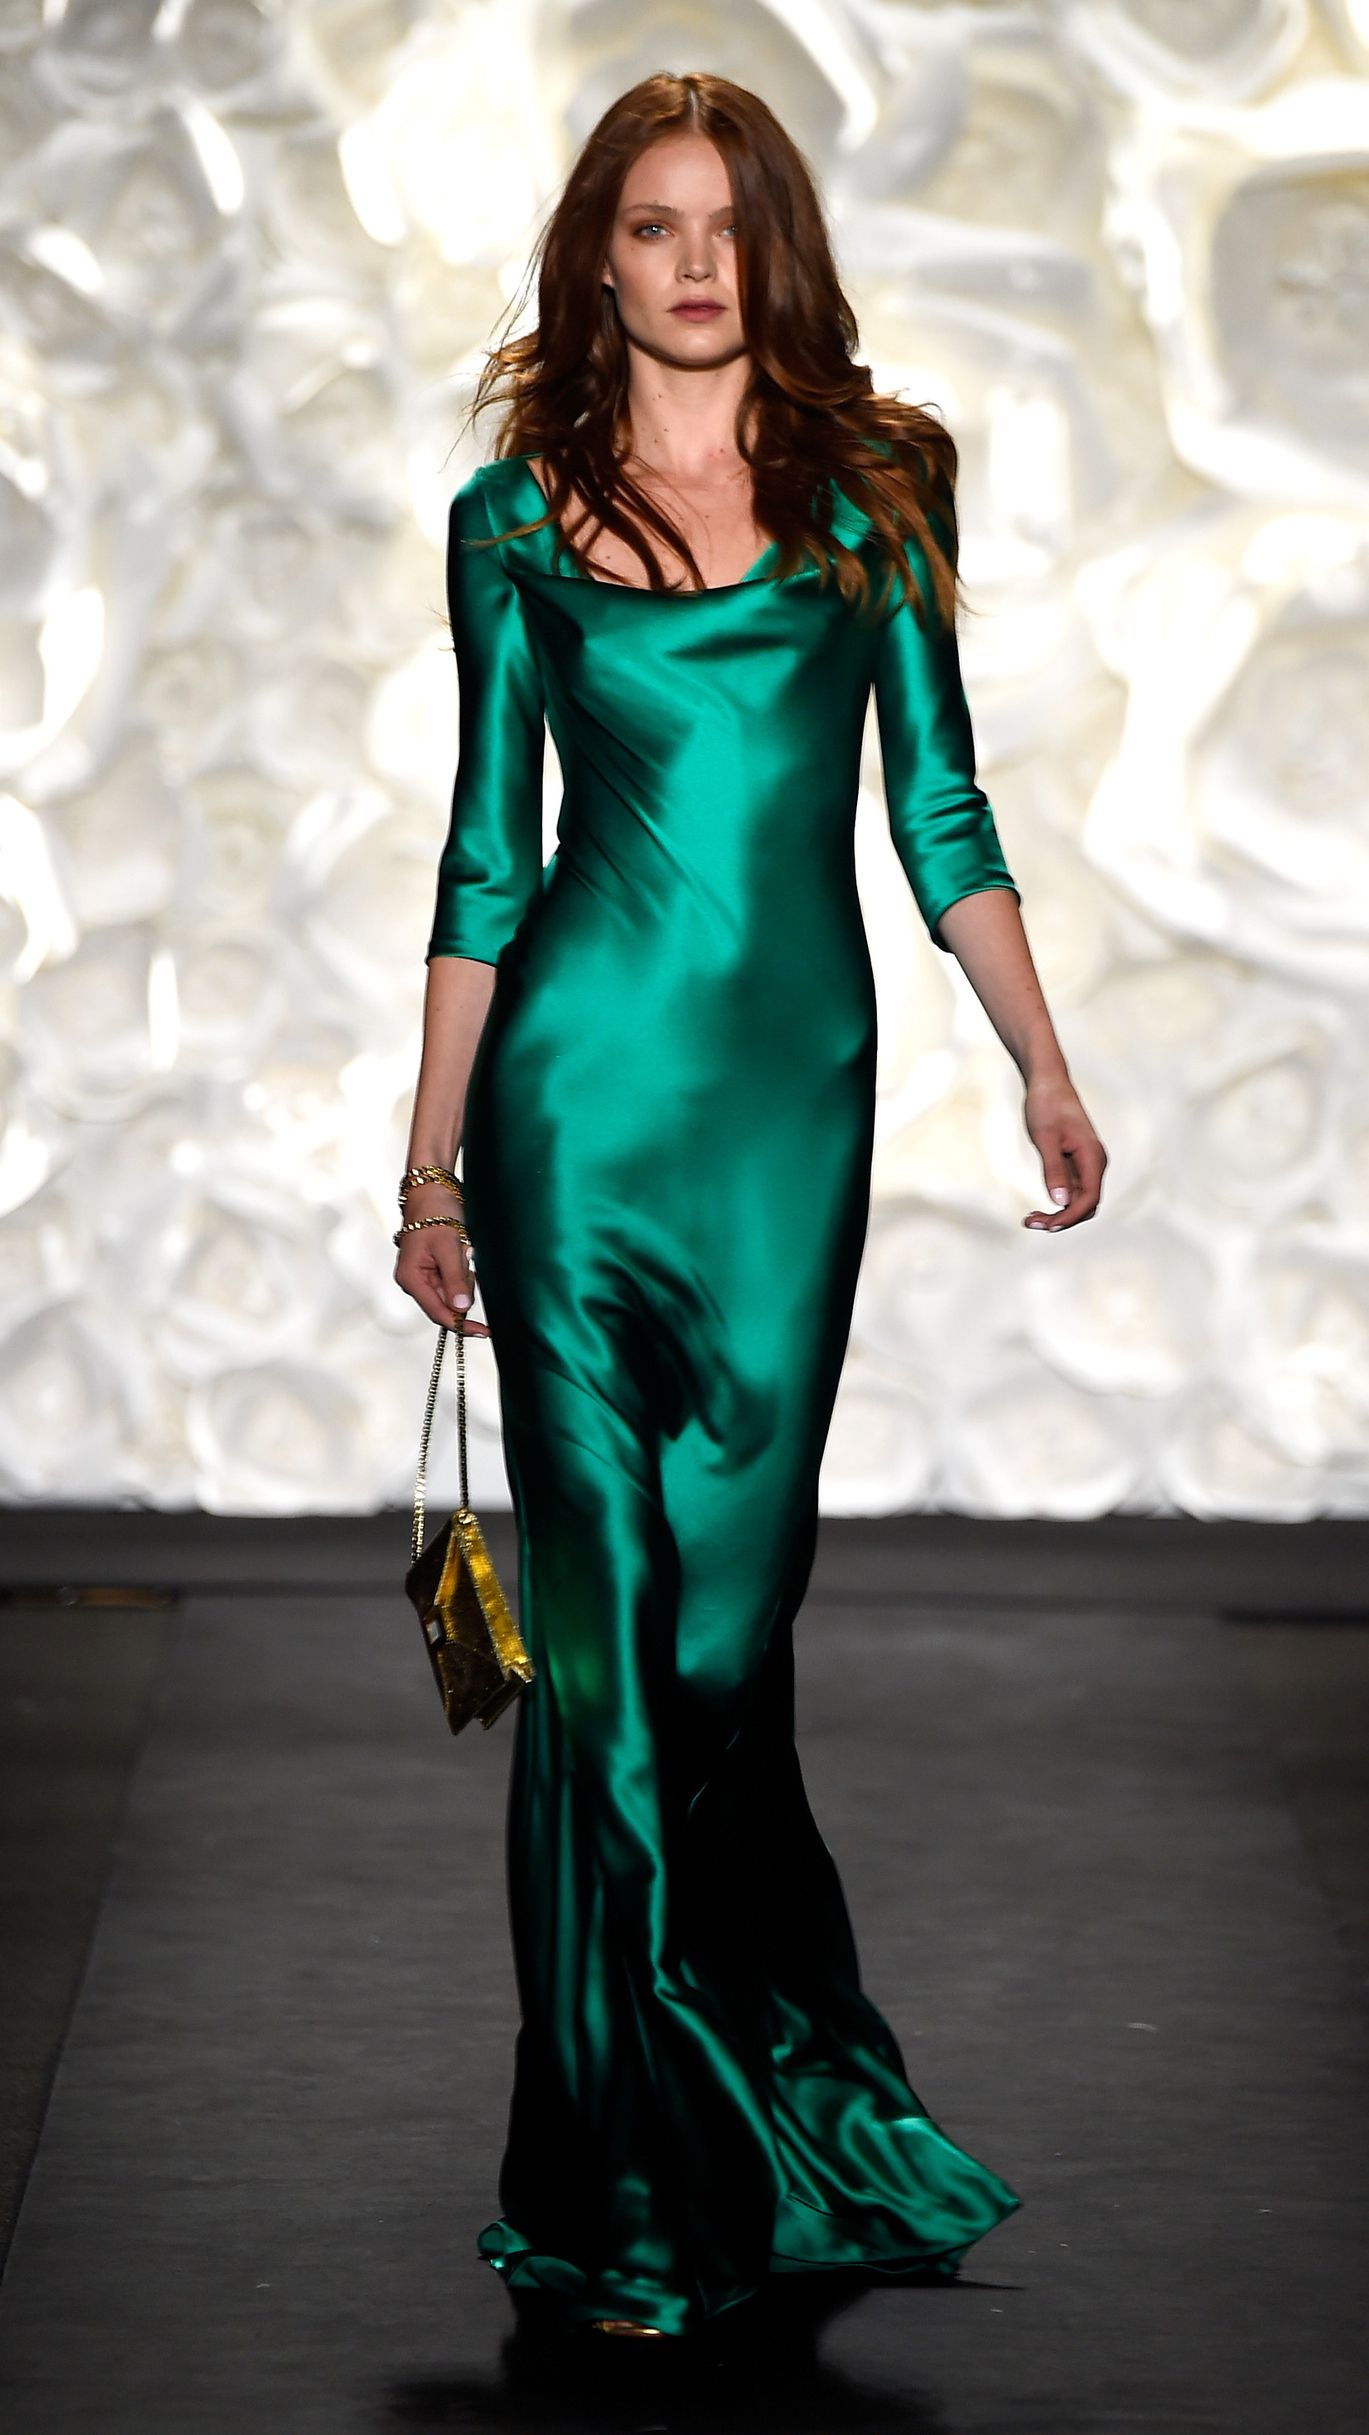 Aol Style News Trends And Advice Pretty Dresses Fashion Gorgeous Dresses [ 2435 x 1369 Pixel ]